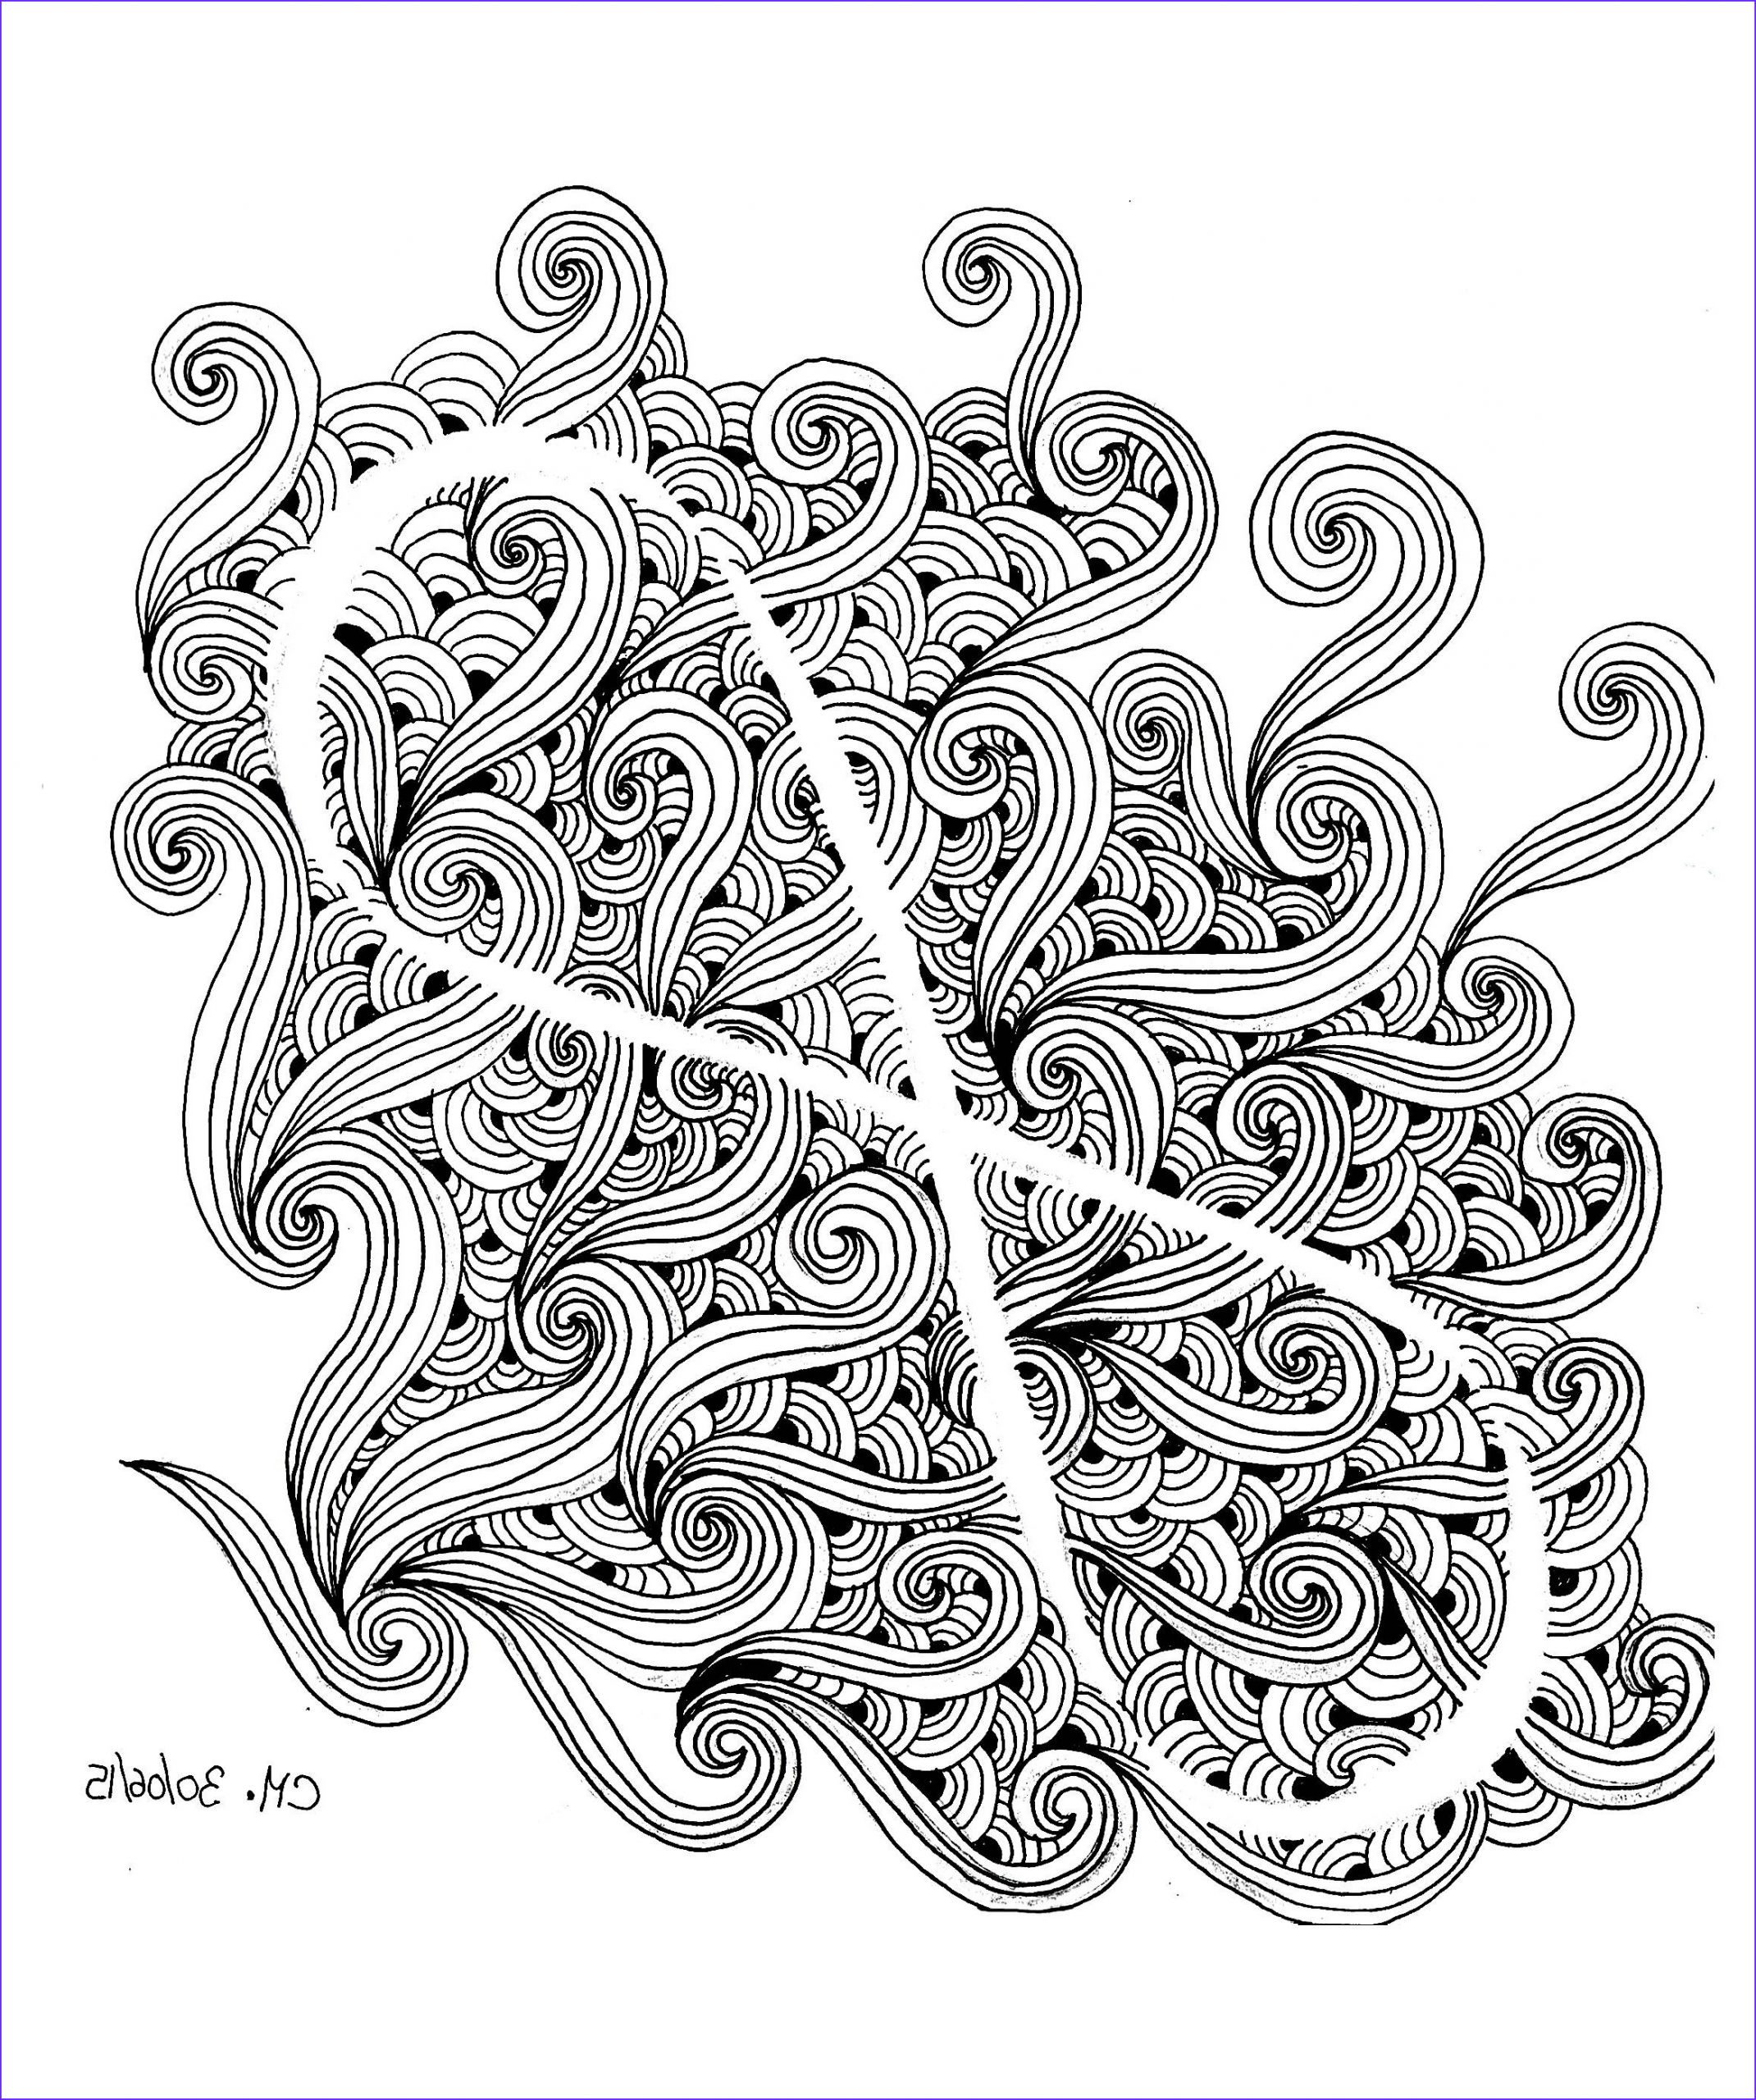 Coloring Stress Cool Gallery Cathym14 Anti Stress Adult Coloring Pages